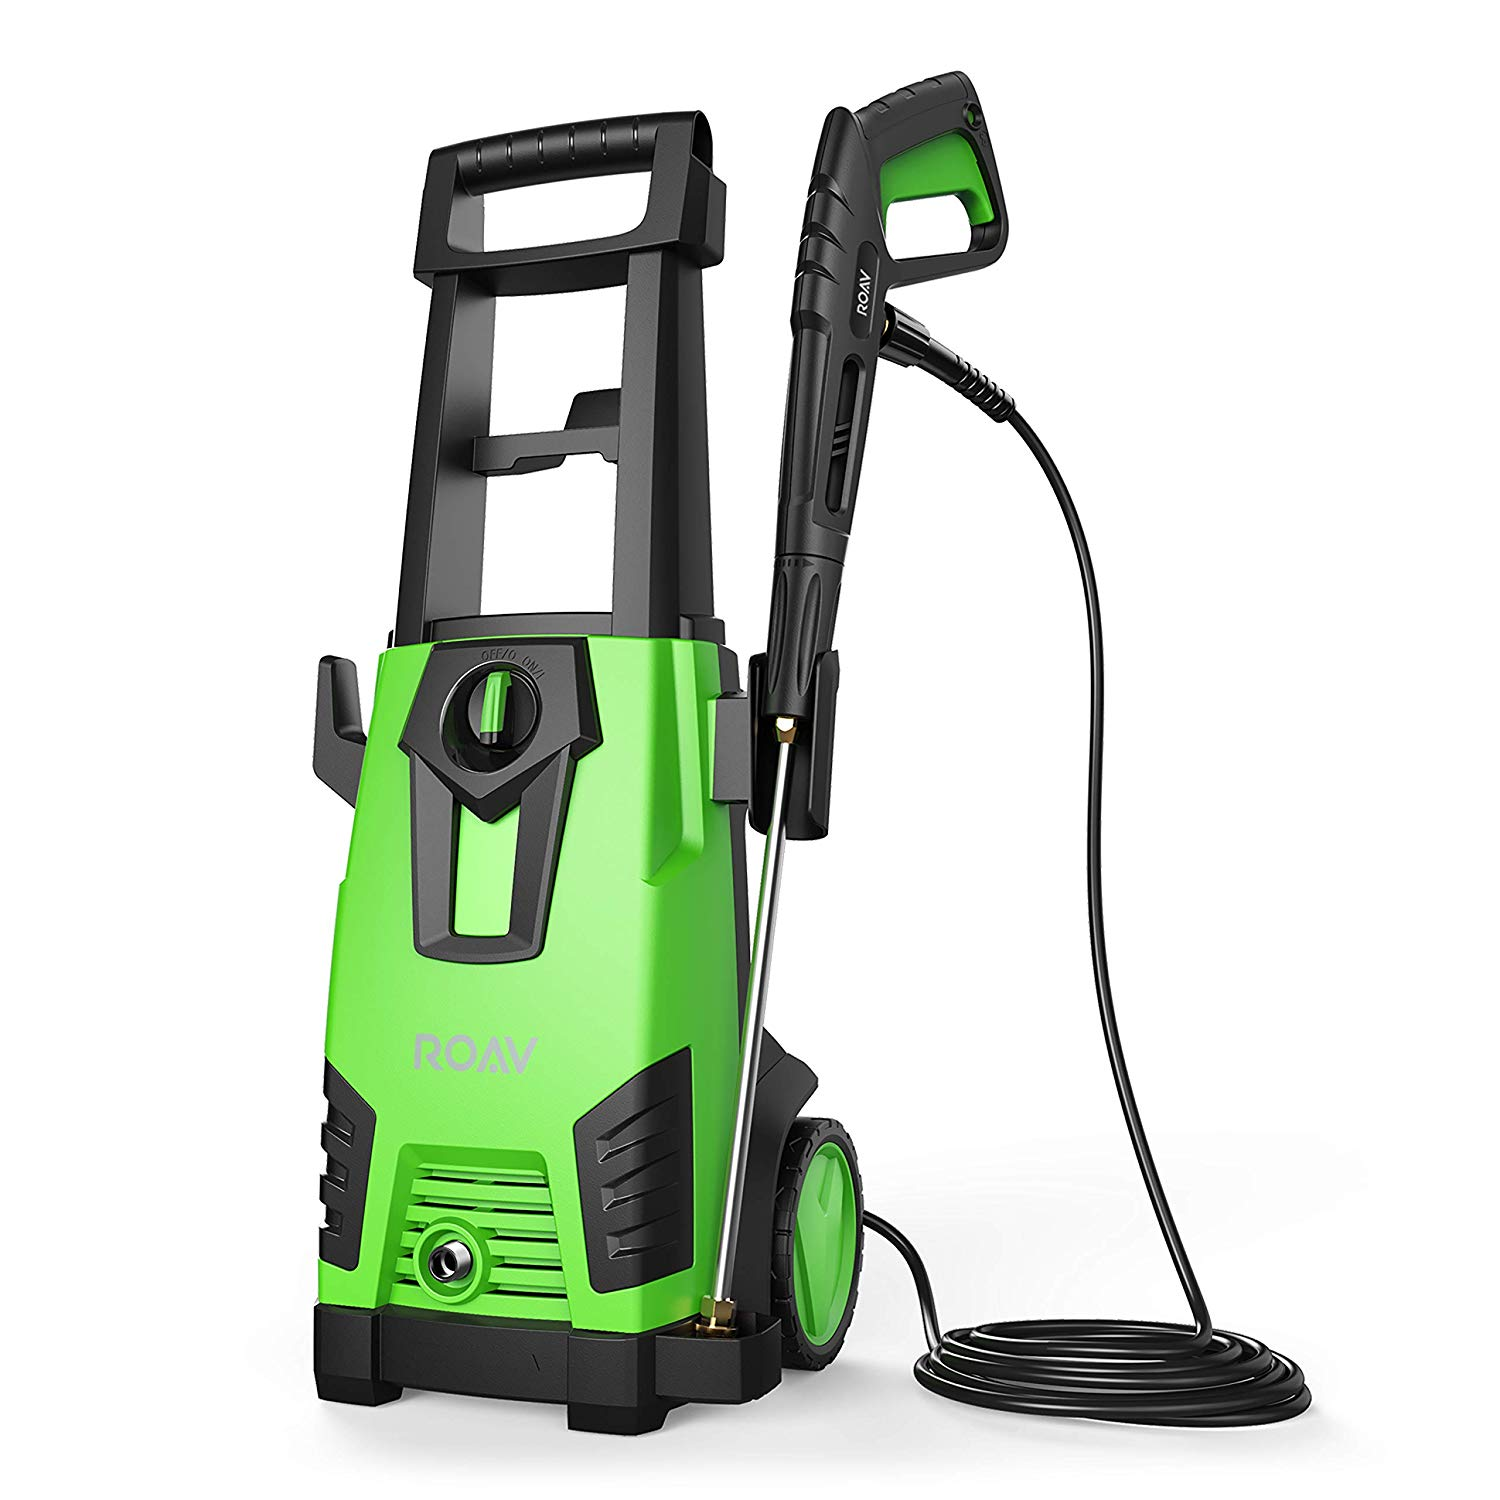 ROAV by Anker HydroClean Electric Pressure Washer